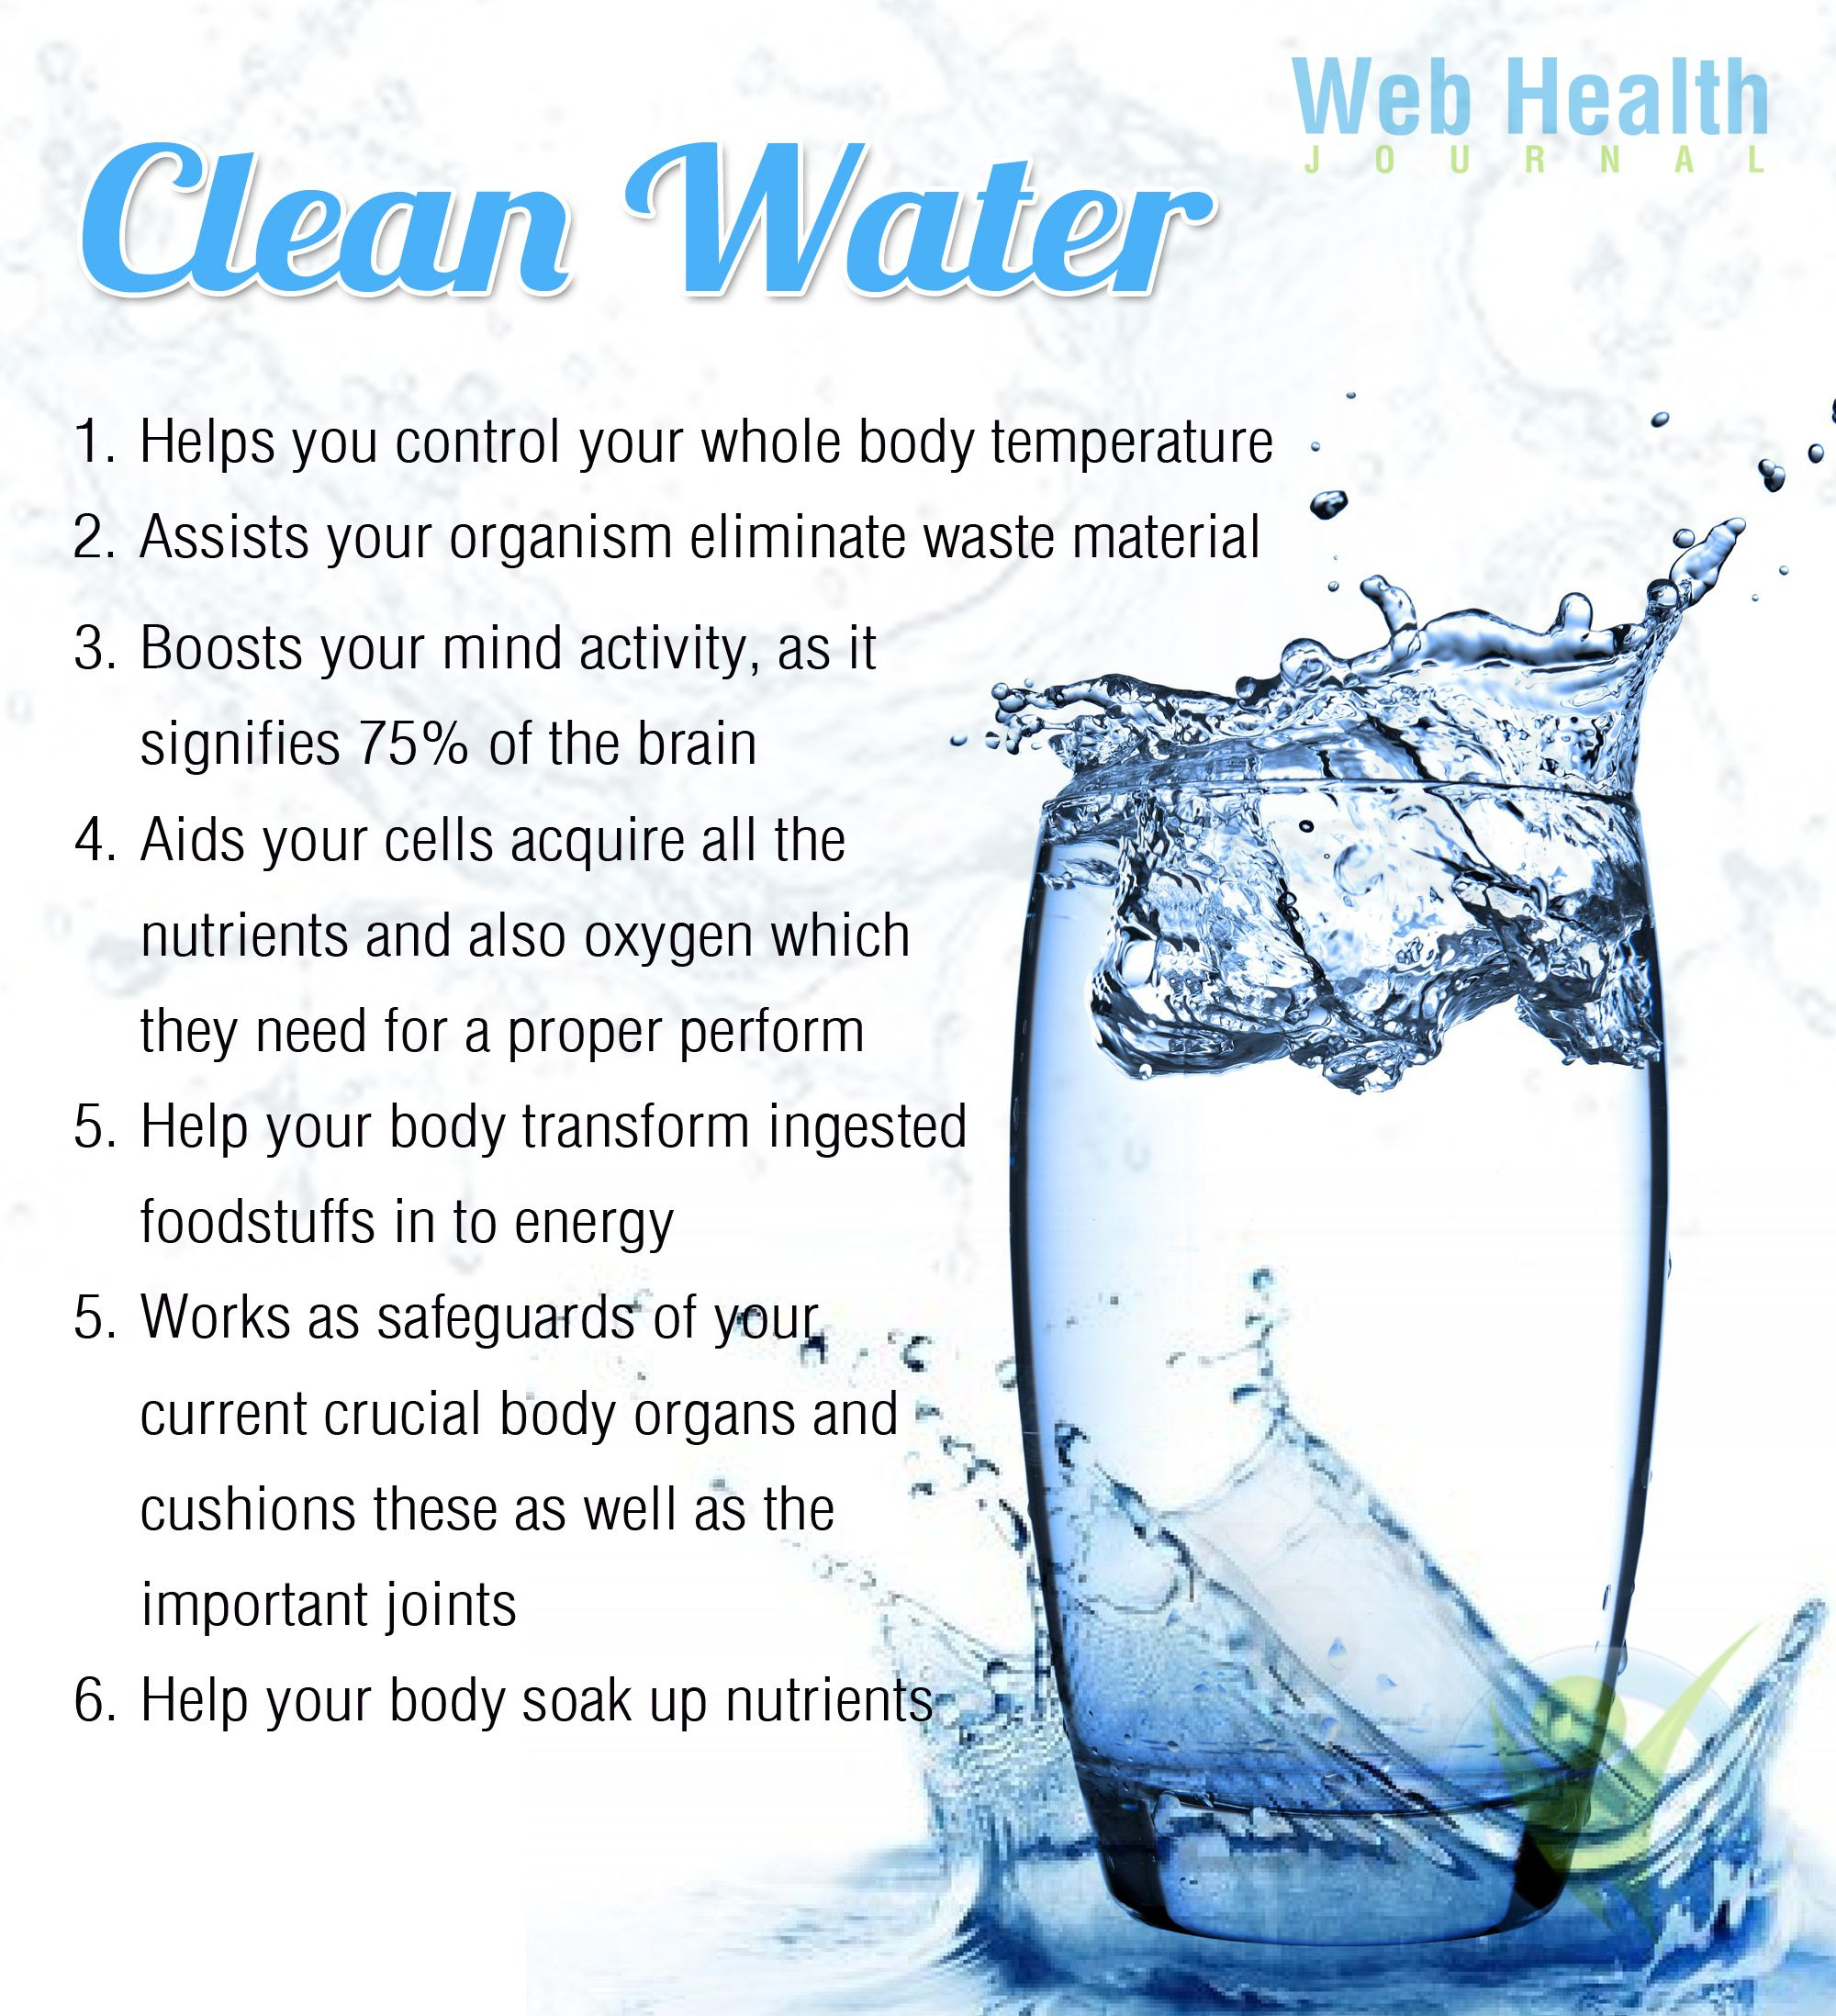 Health benefits of clean water wellness quotes clean